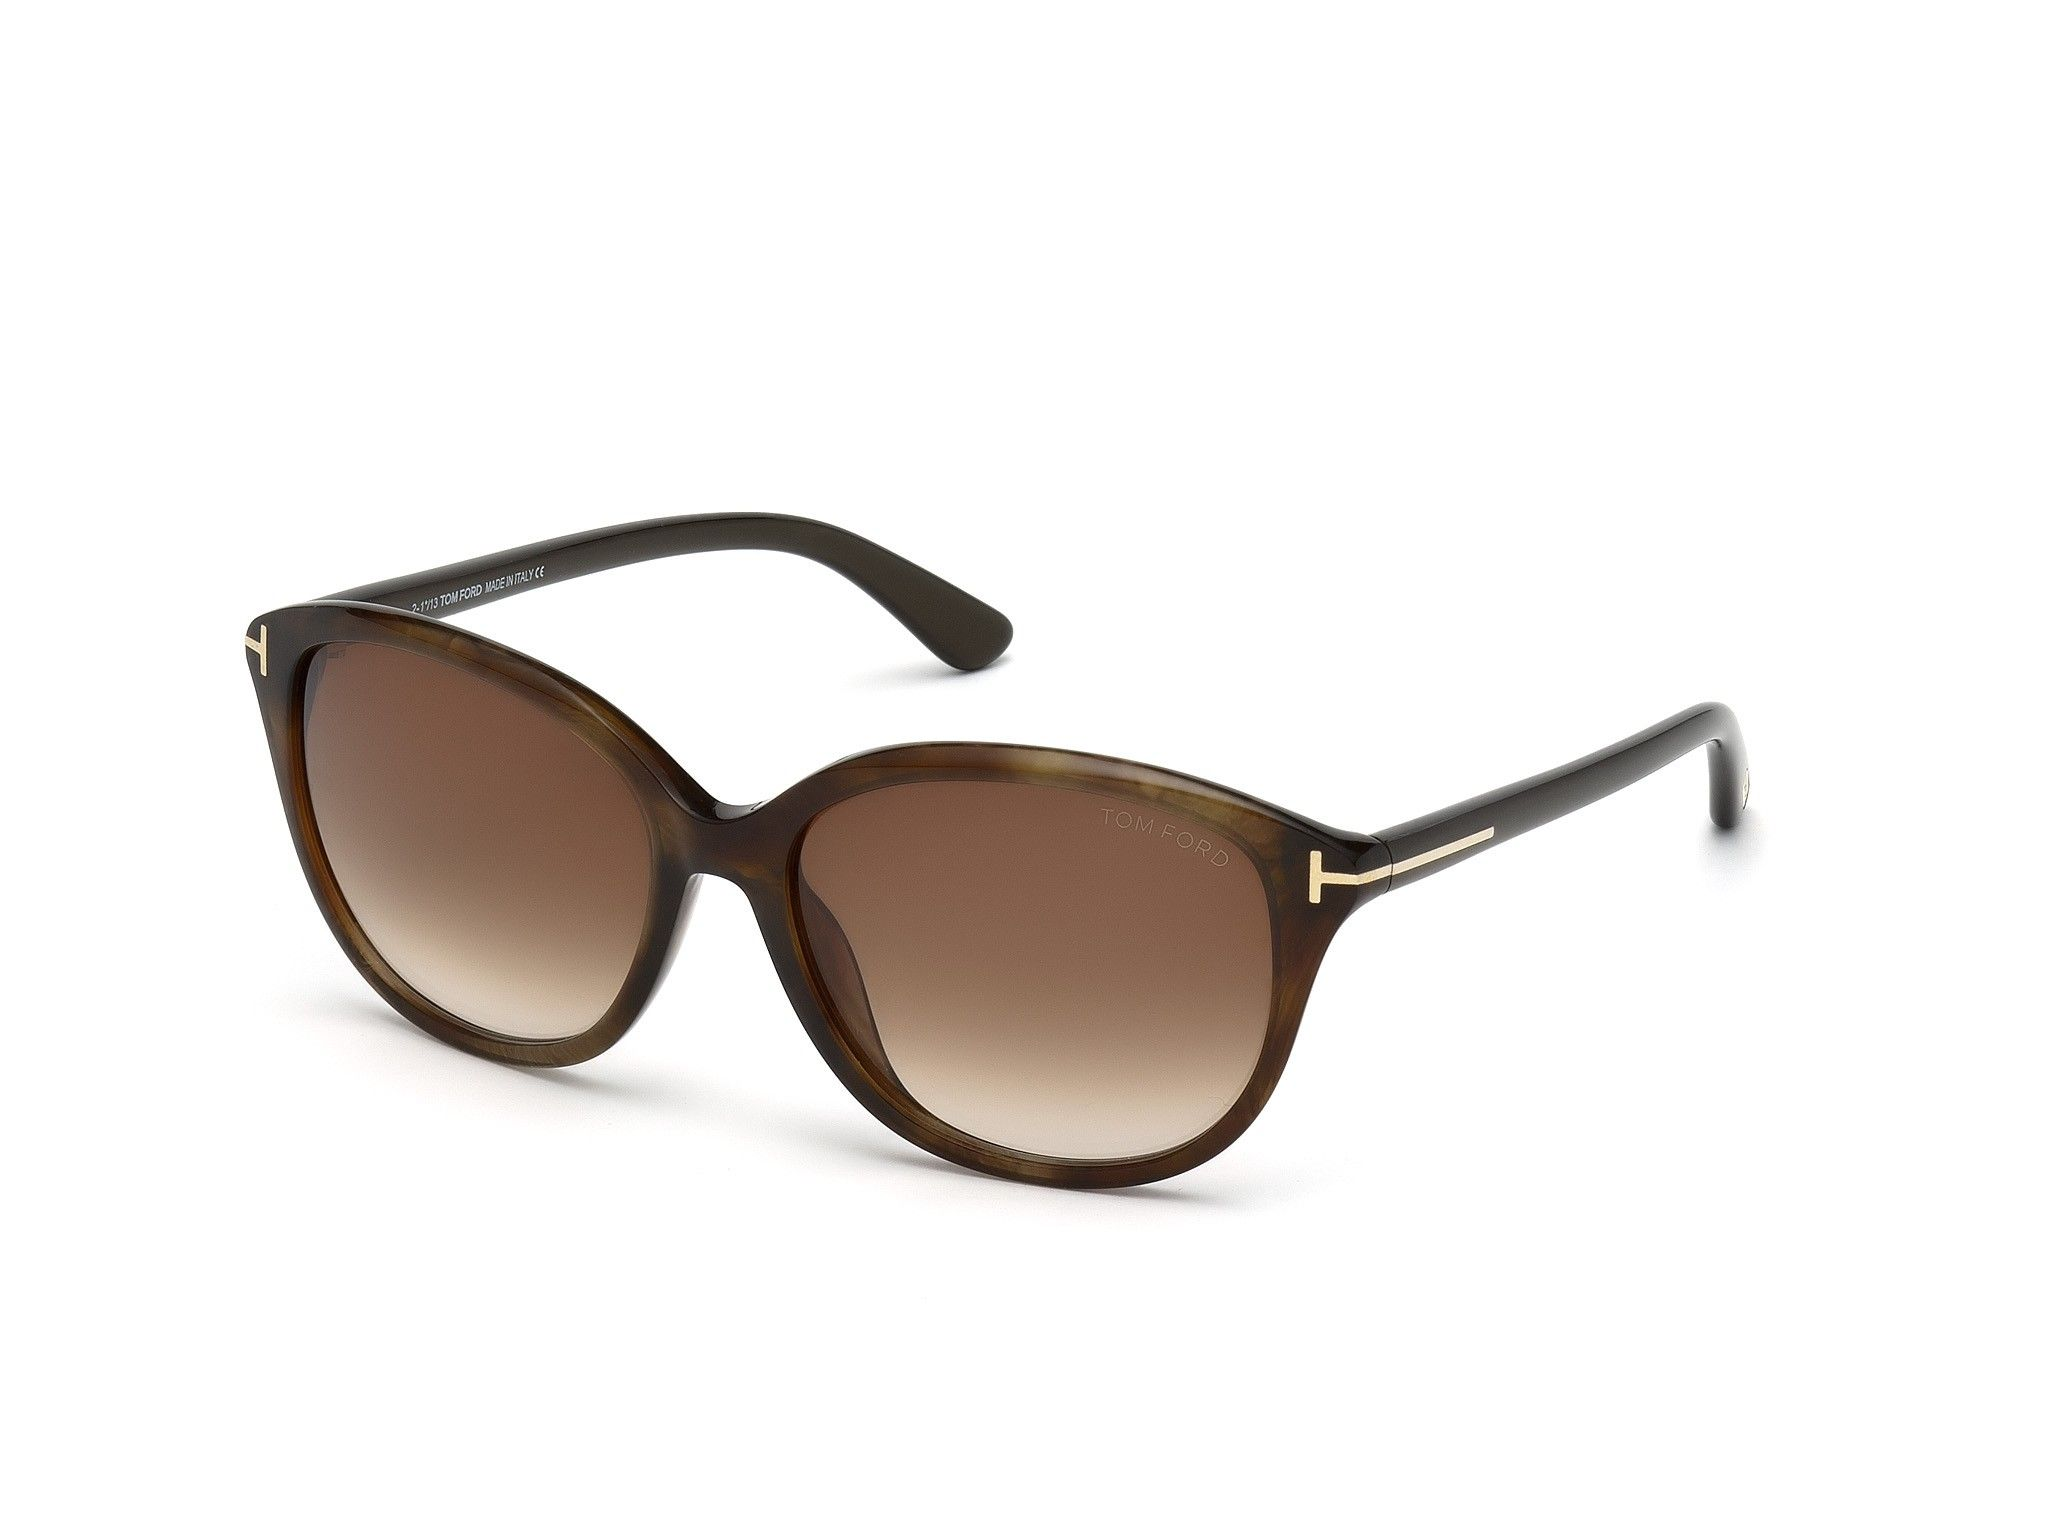 Tom Ford Tf 329 50p